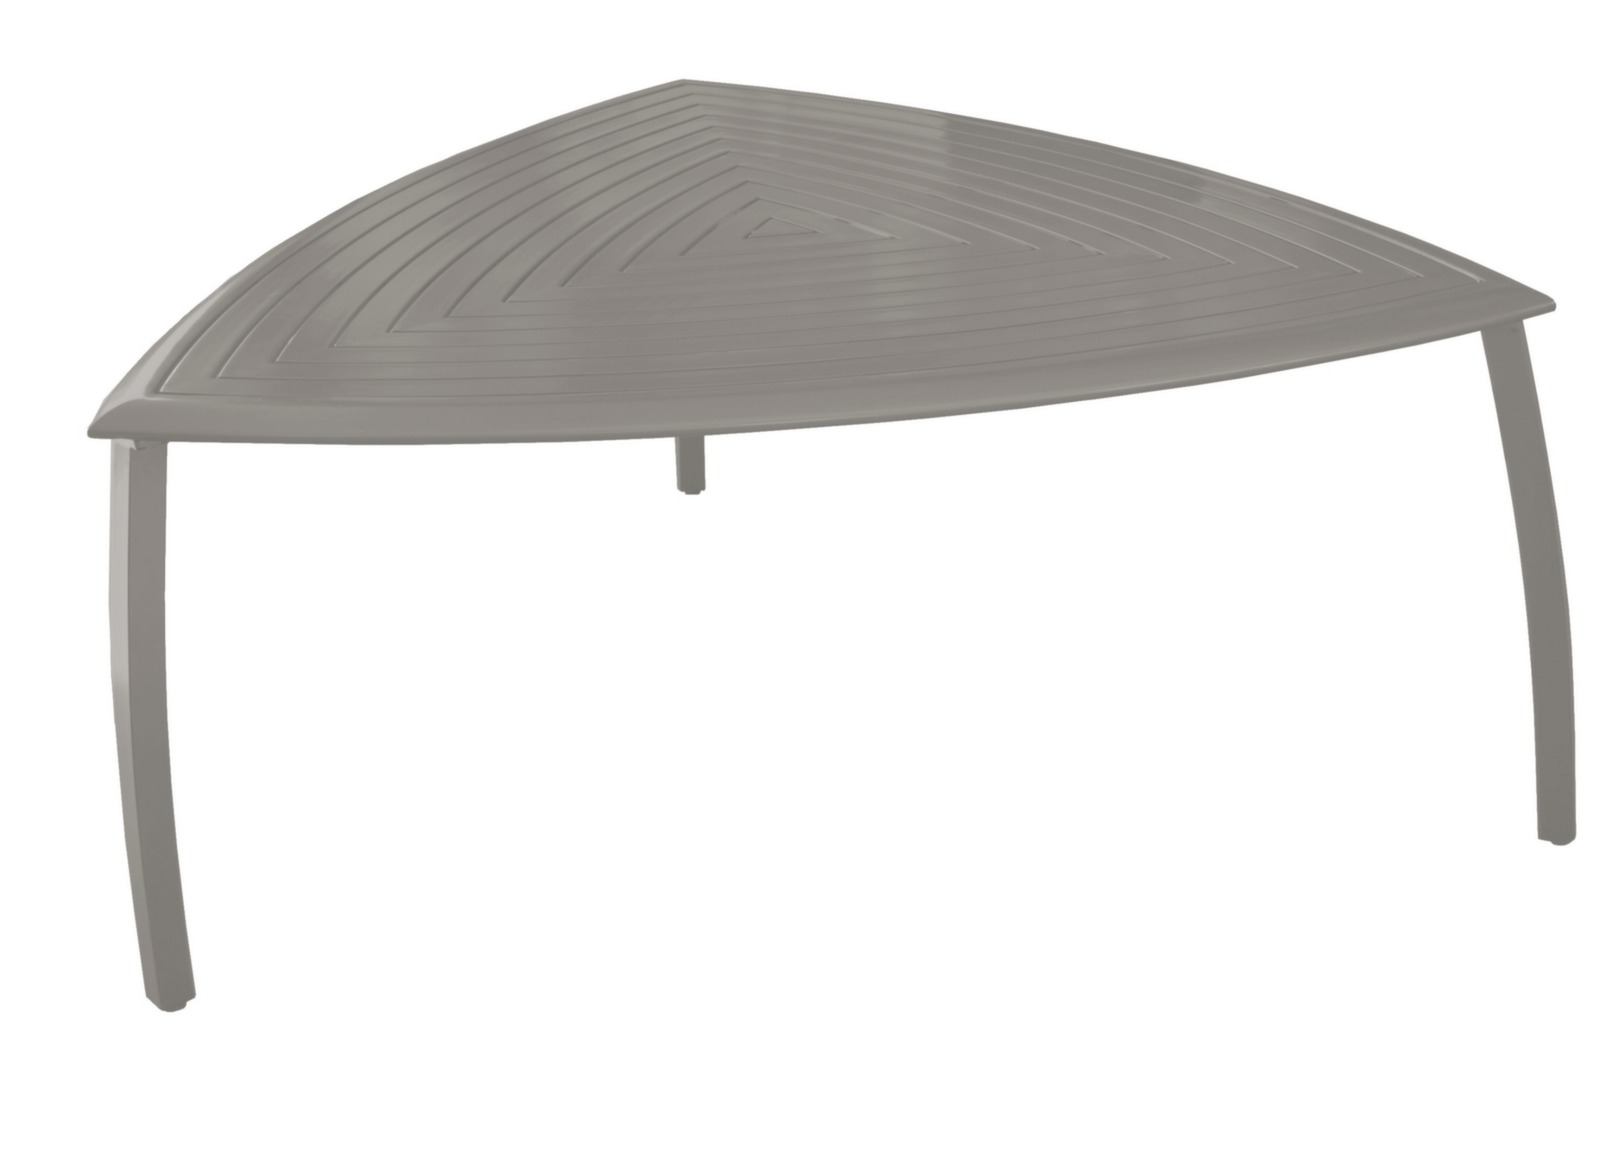 Meuble Triangle Table Azur Triangle Proloisirs Meuble De Jardin